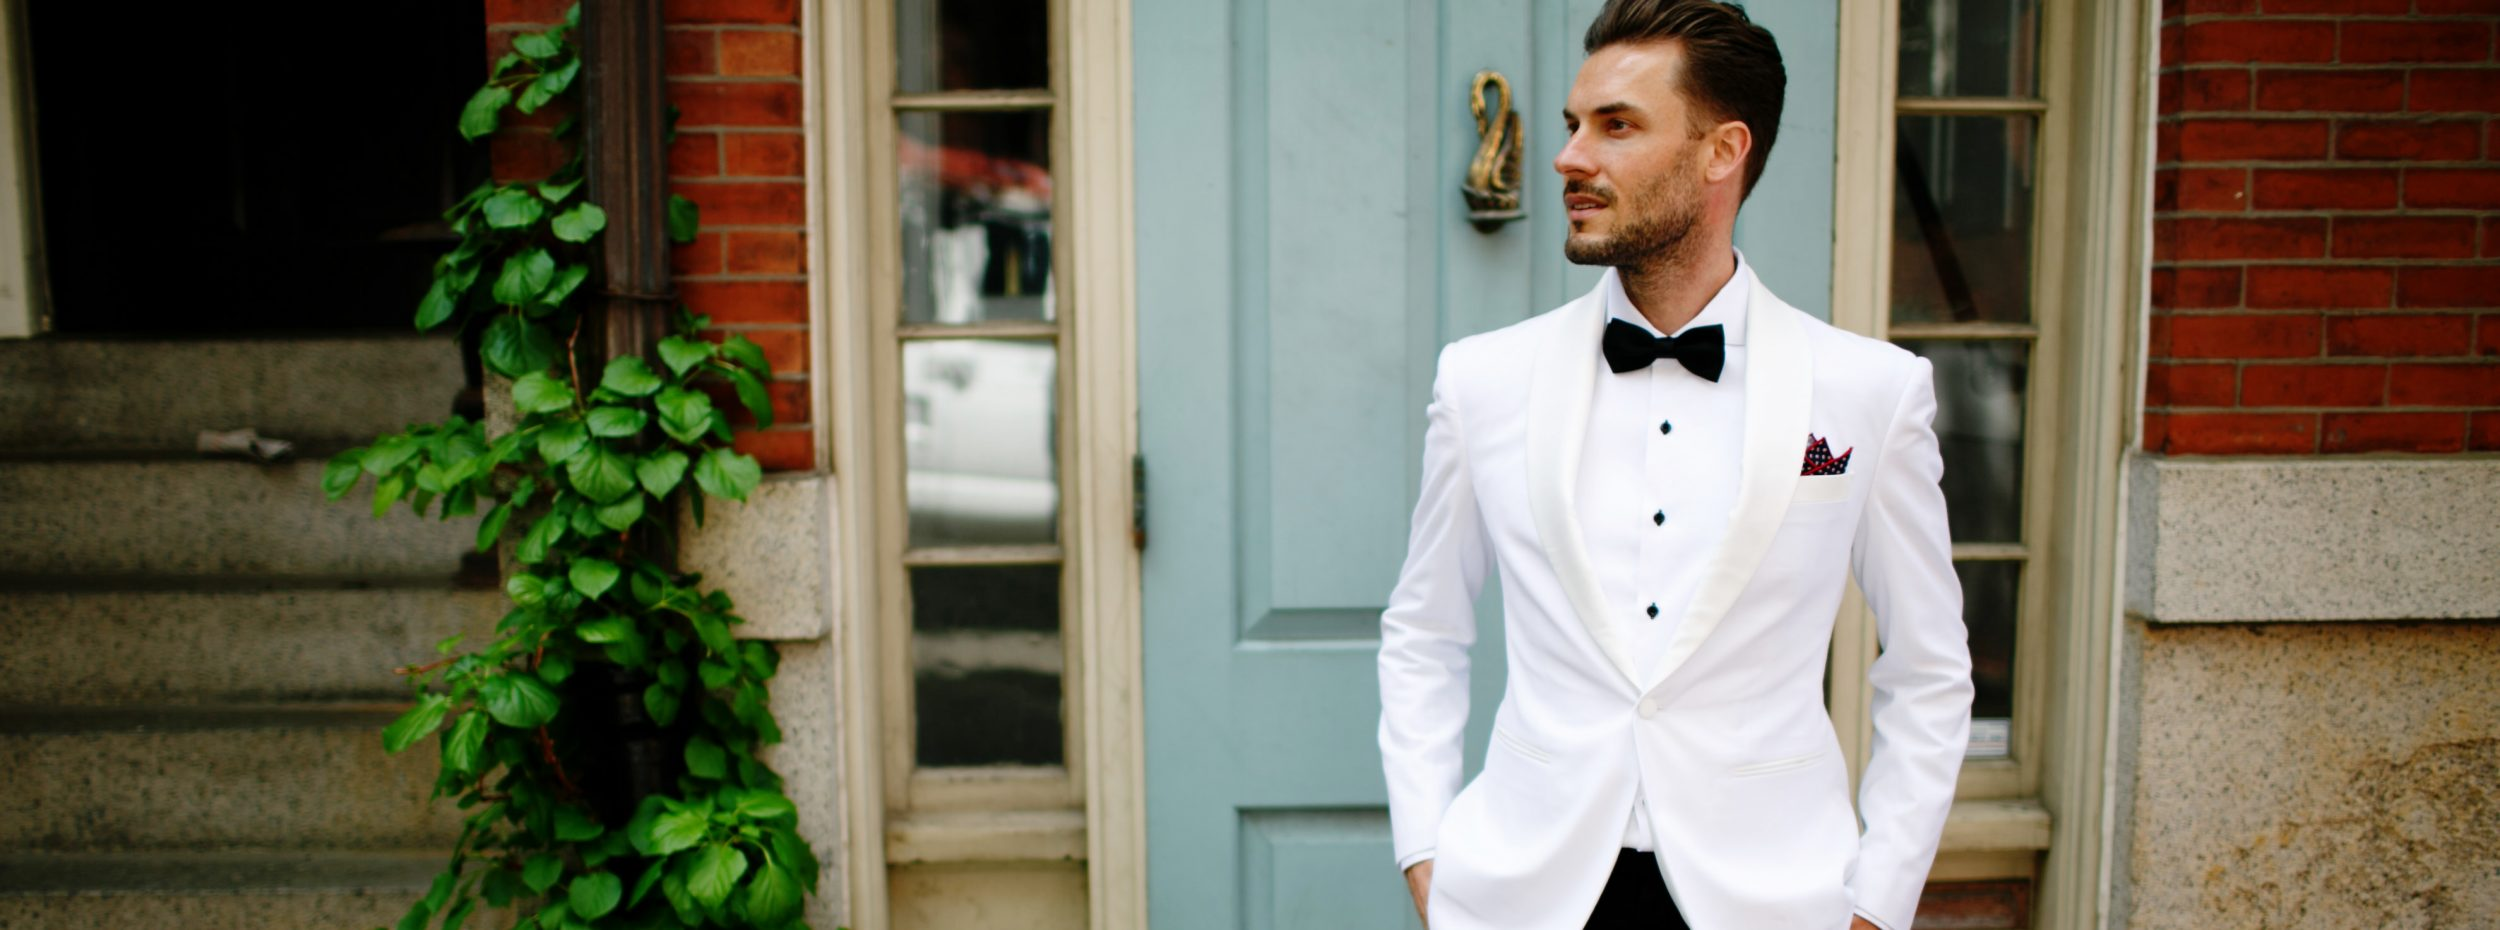 9tailors Blog – A Menswear Style Blog